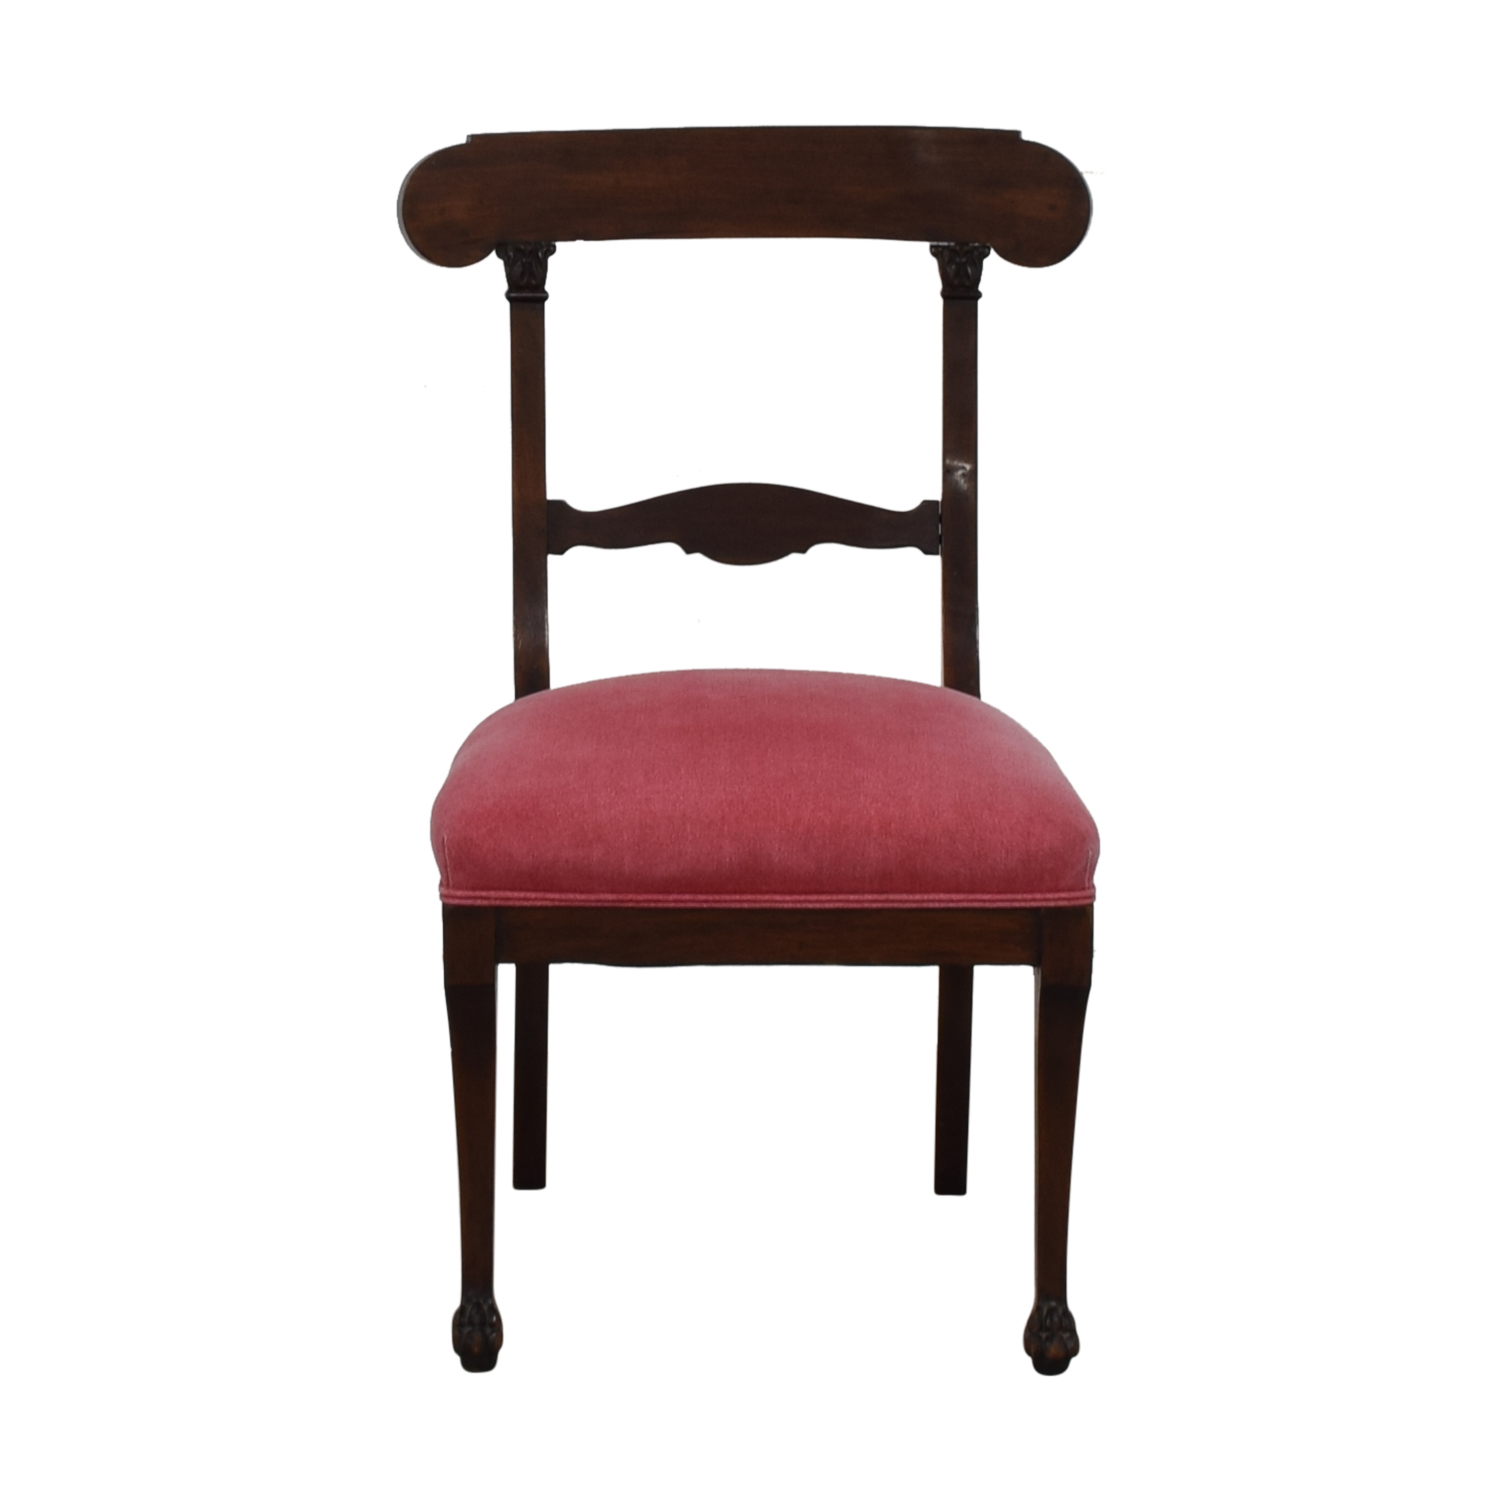 Antique Wood and Red Upholstered Accent Chair / Accent Chairs